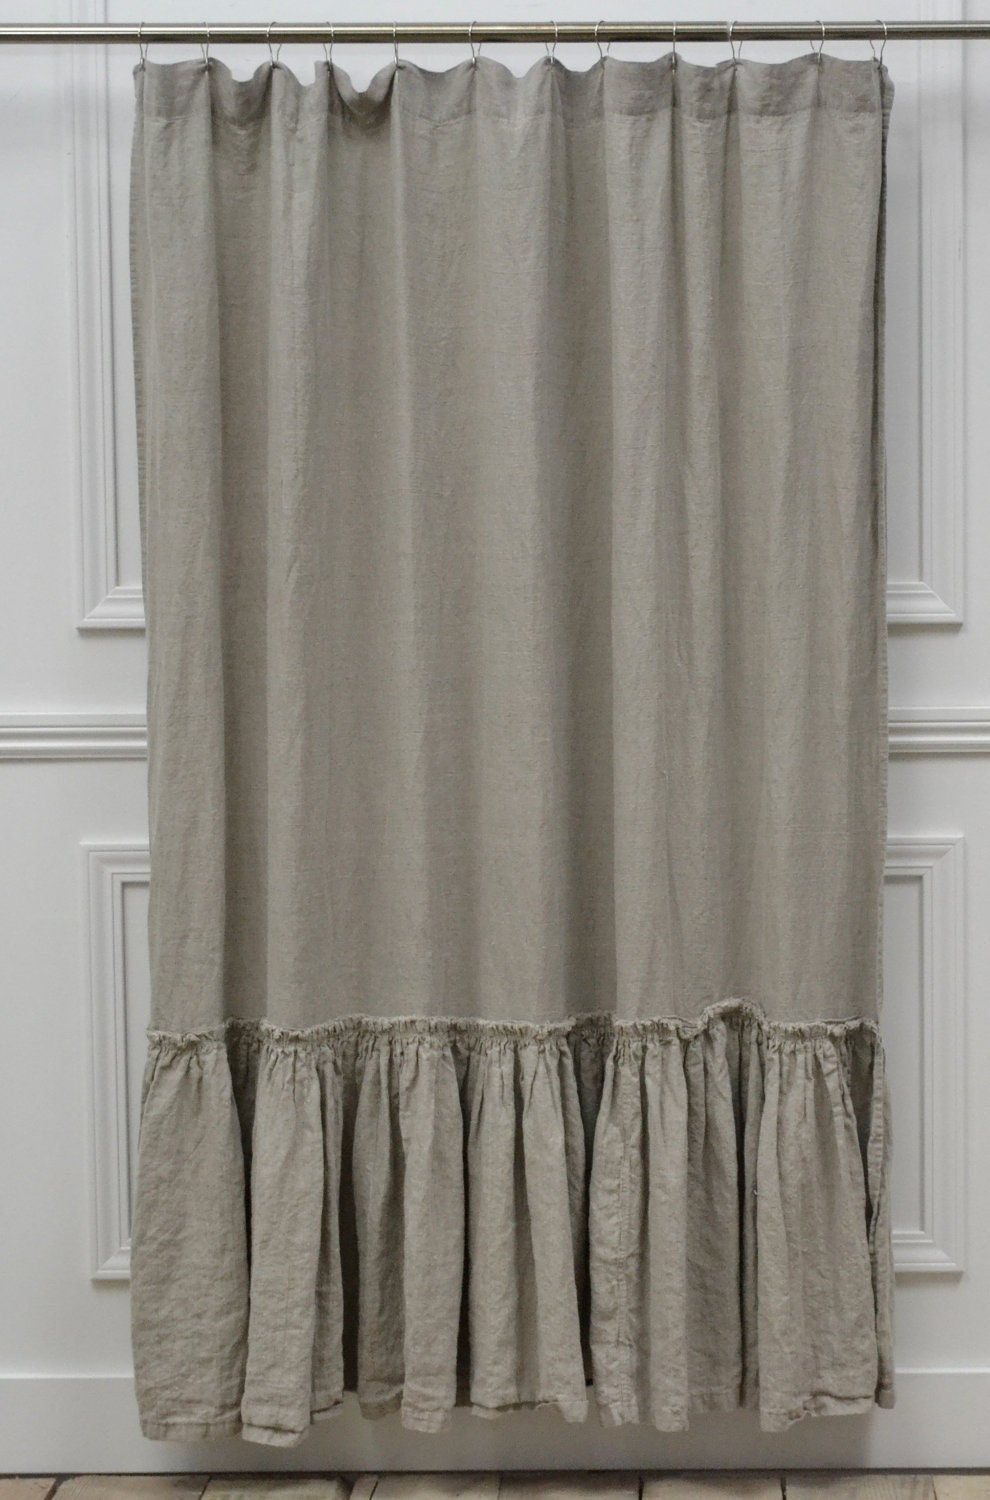 vintage ruffle shower curtain 72w x 76l 87973